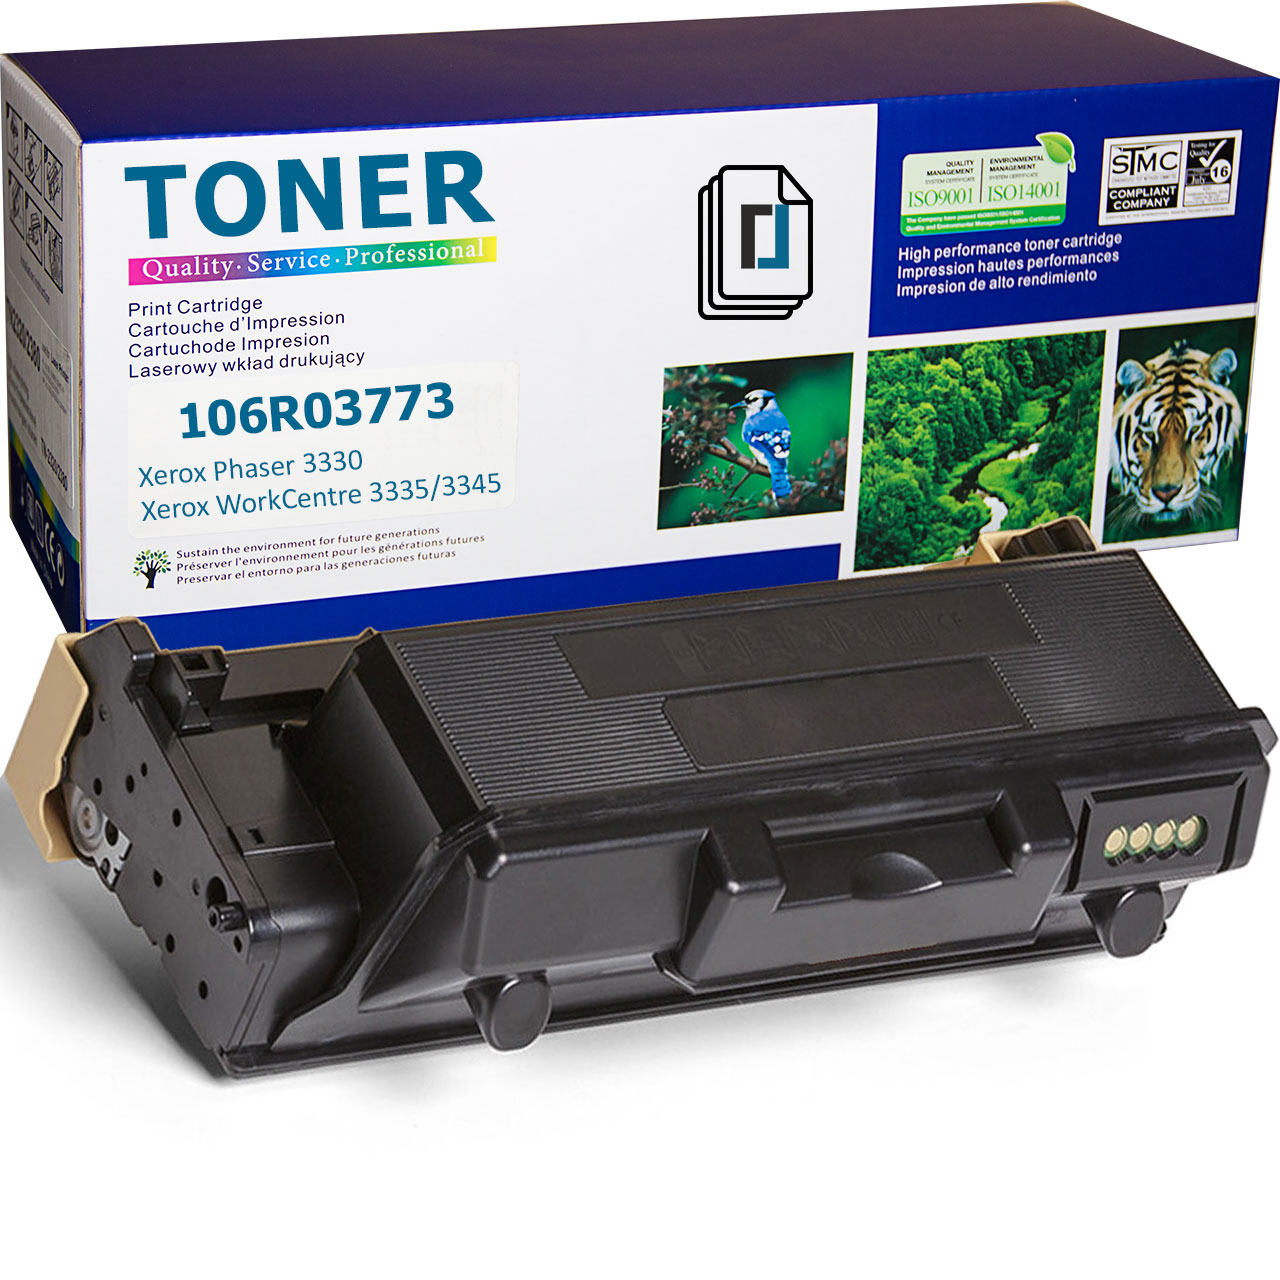 106R03773 Toner Cartridge compatible with Xerox Phaser 3330